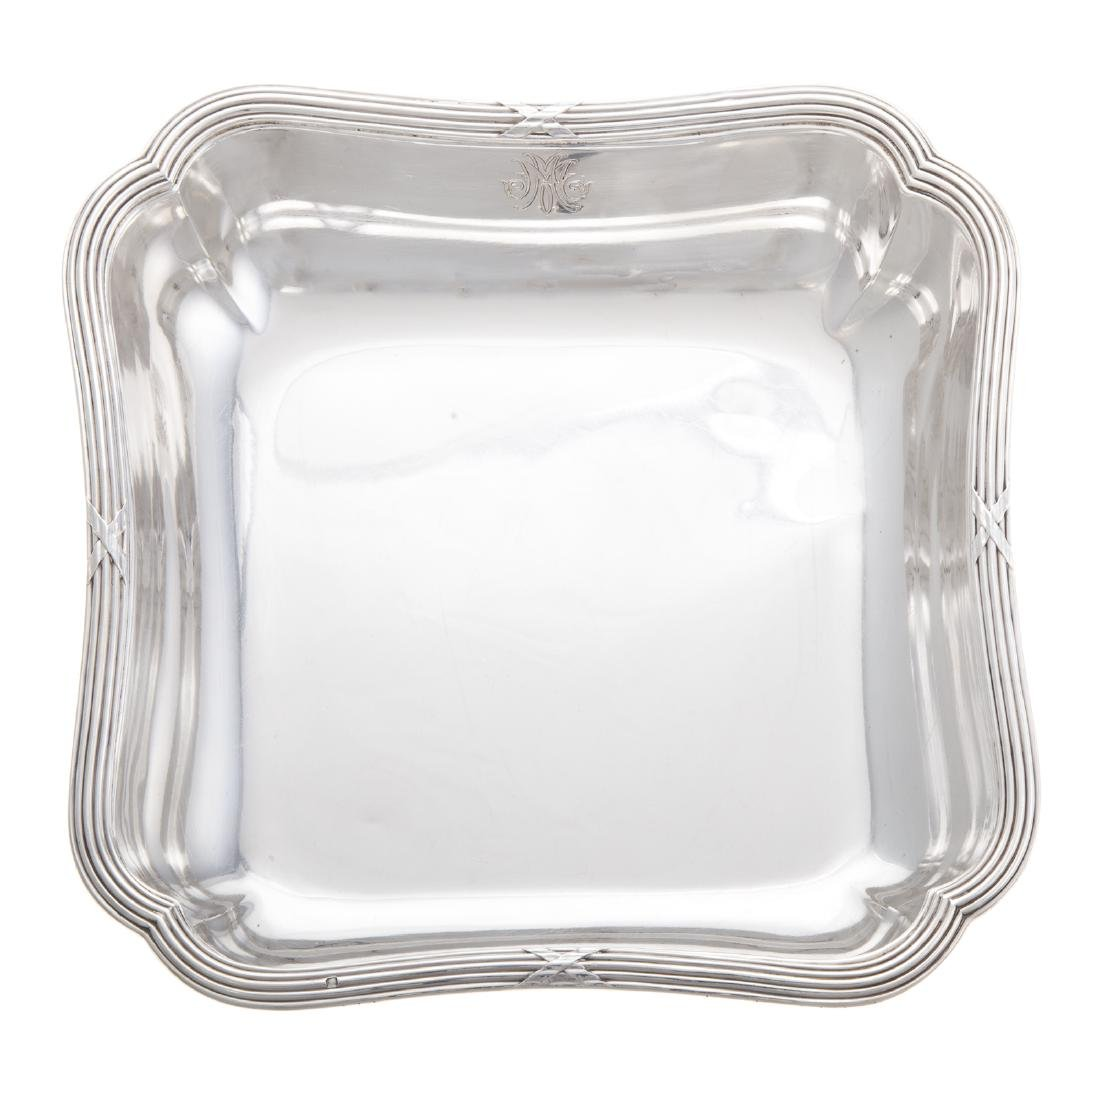 French silver dish - 2